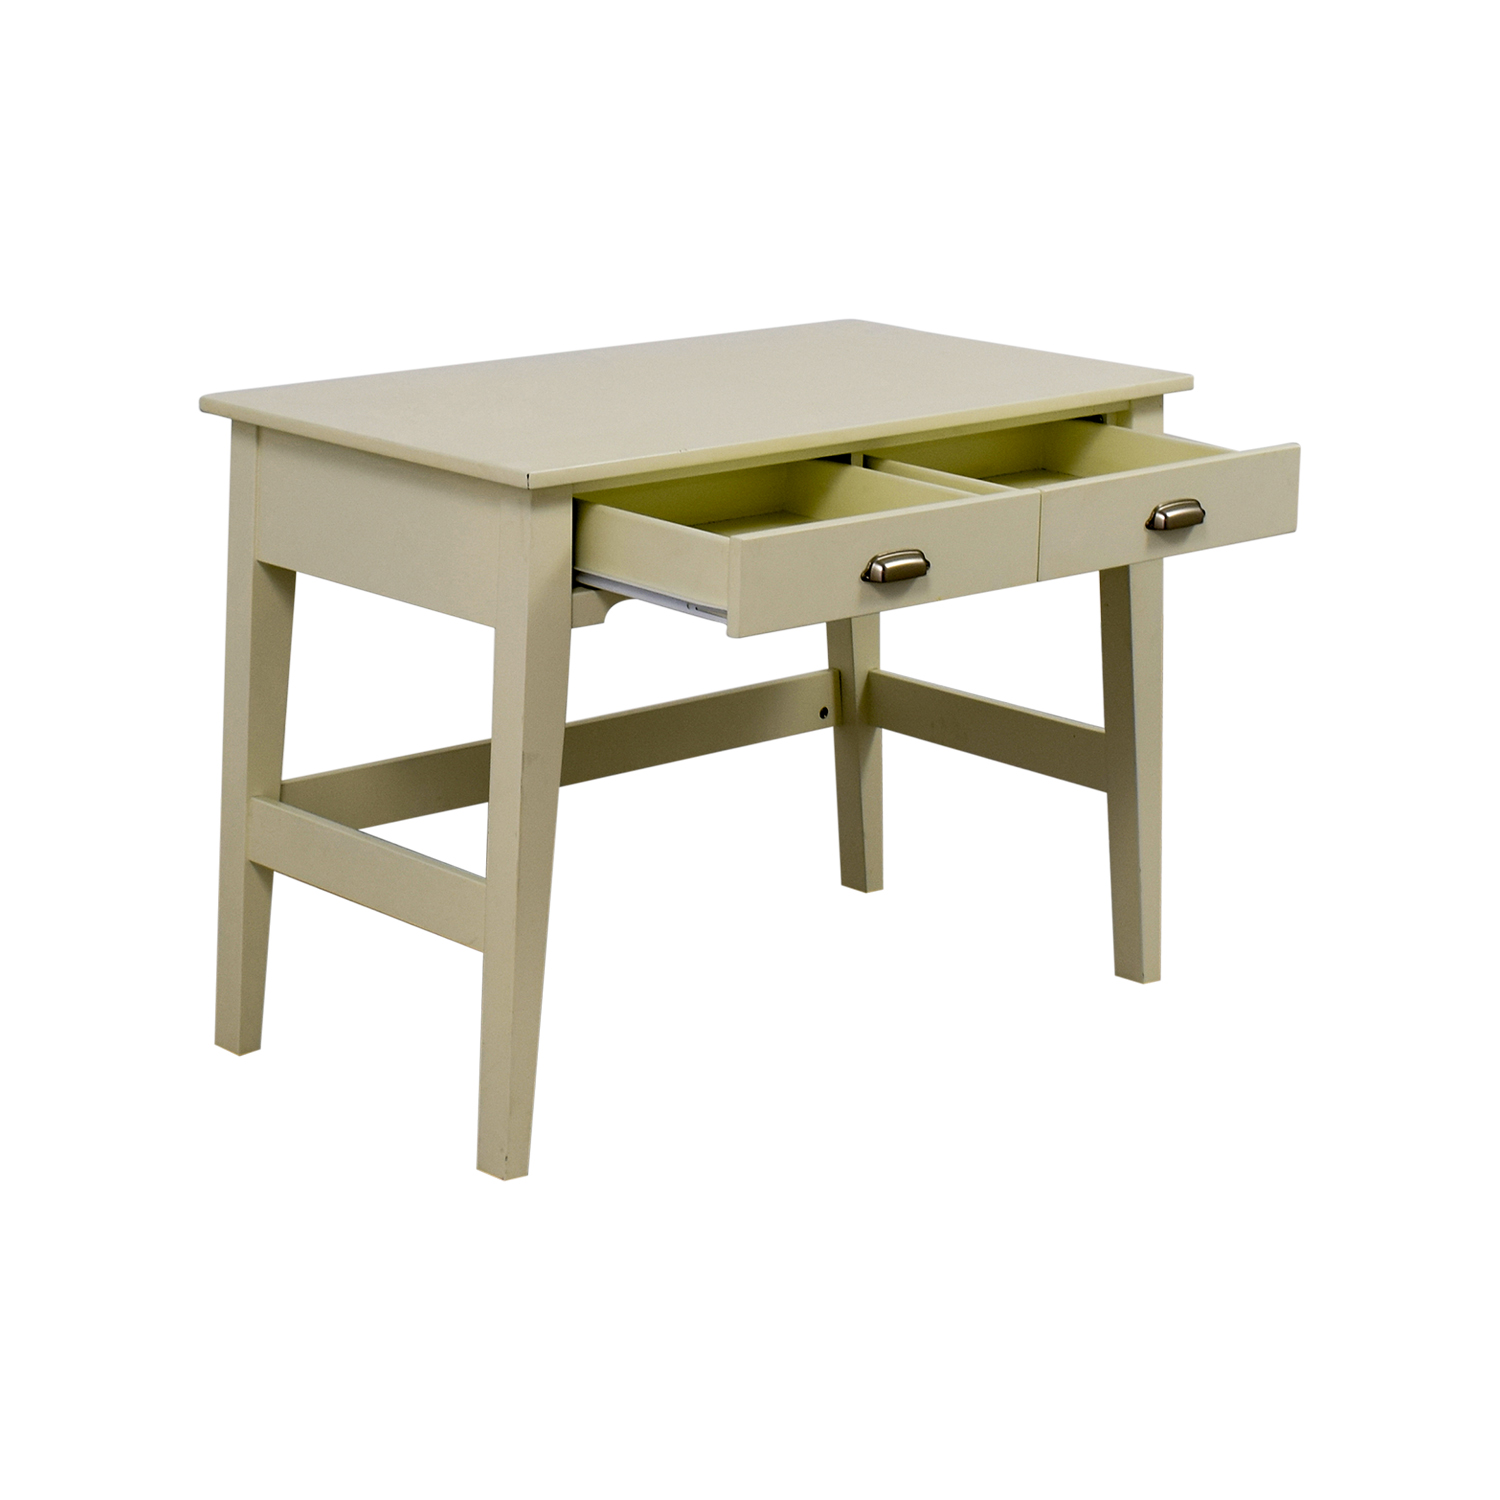 ... L.L. Bean L.L. Bean Mission Desk Tables ...